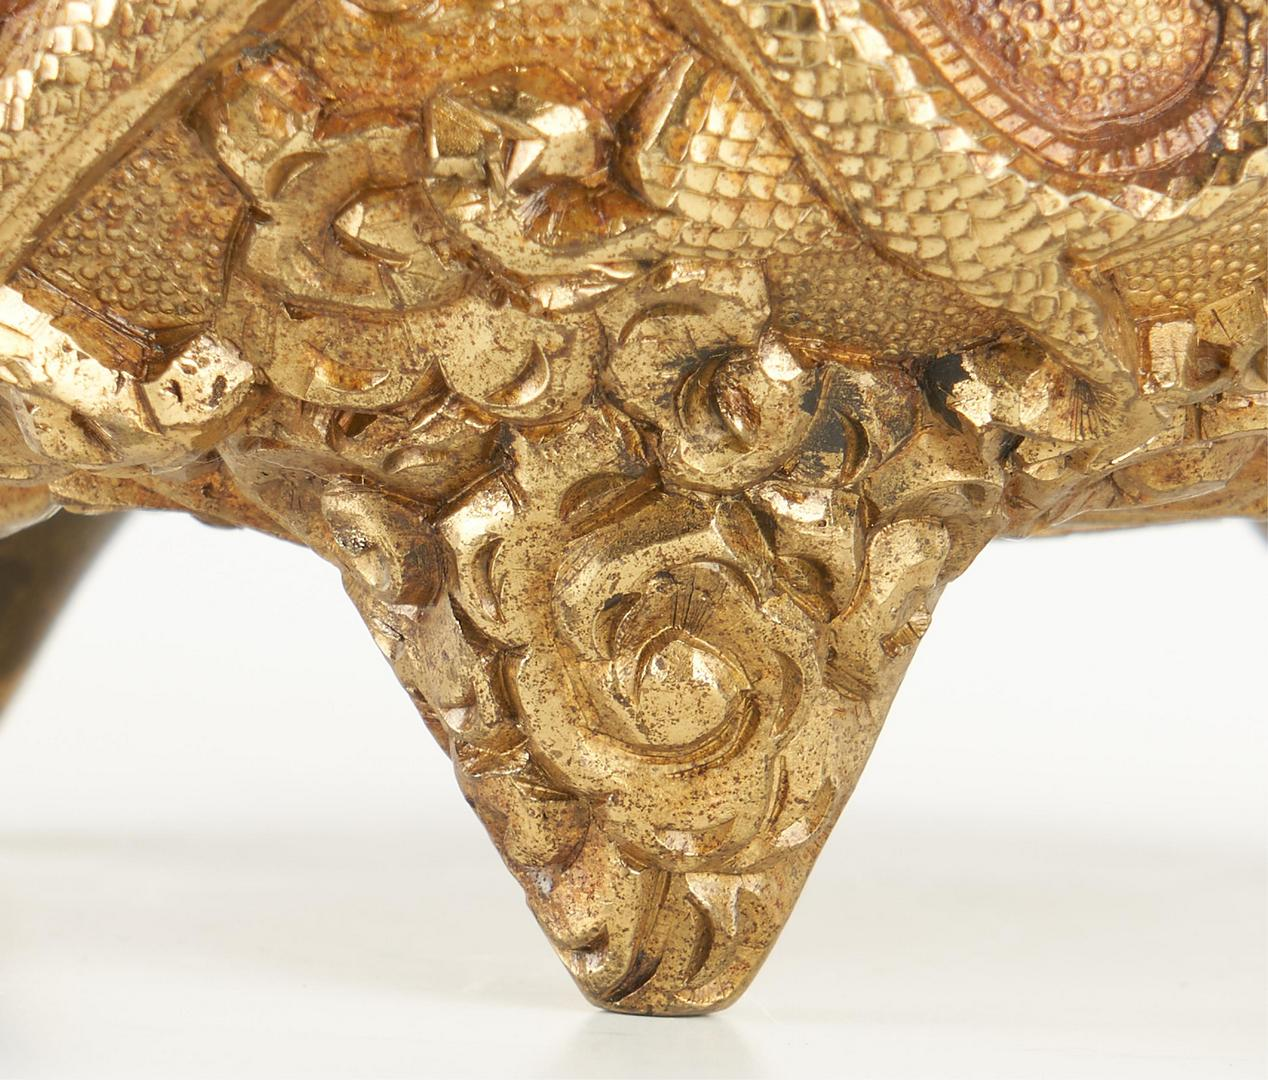 Lot 10: Chinese Gilt Bronze Censer with Dragon Relief Decoration